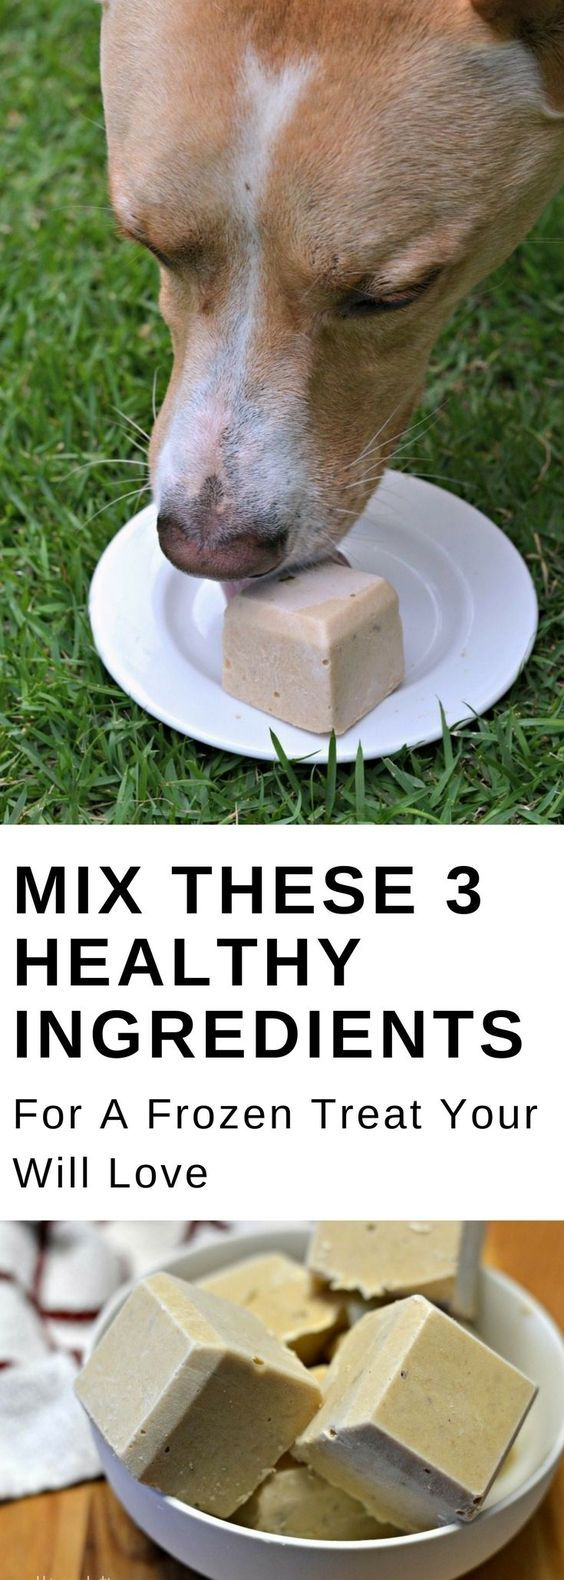 Need A Frozen Treat To Keep Your Dog Cool? This Easy Recipe Uses Just Three Healthy Ingredients